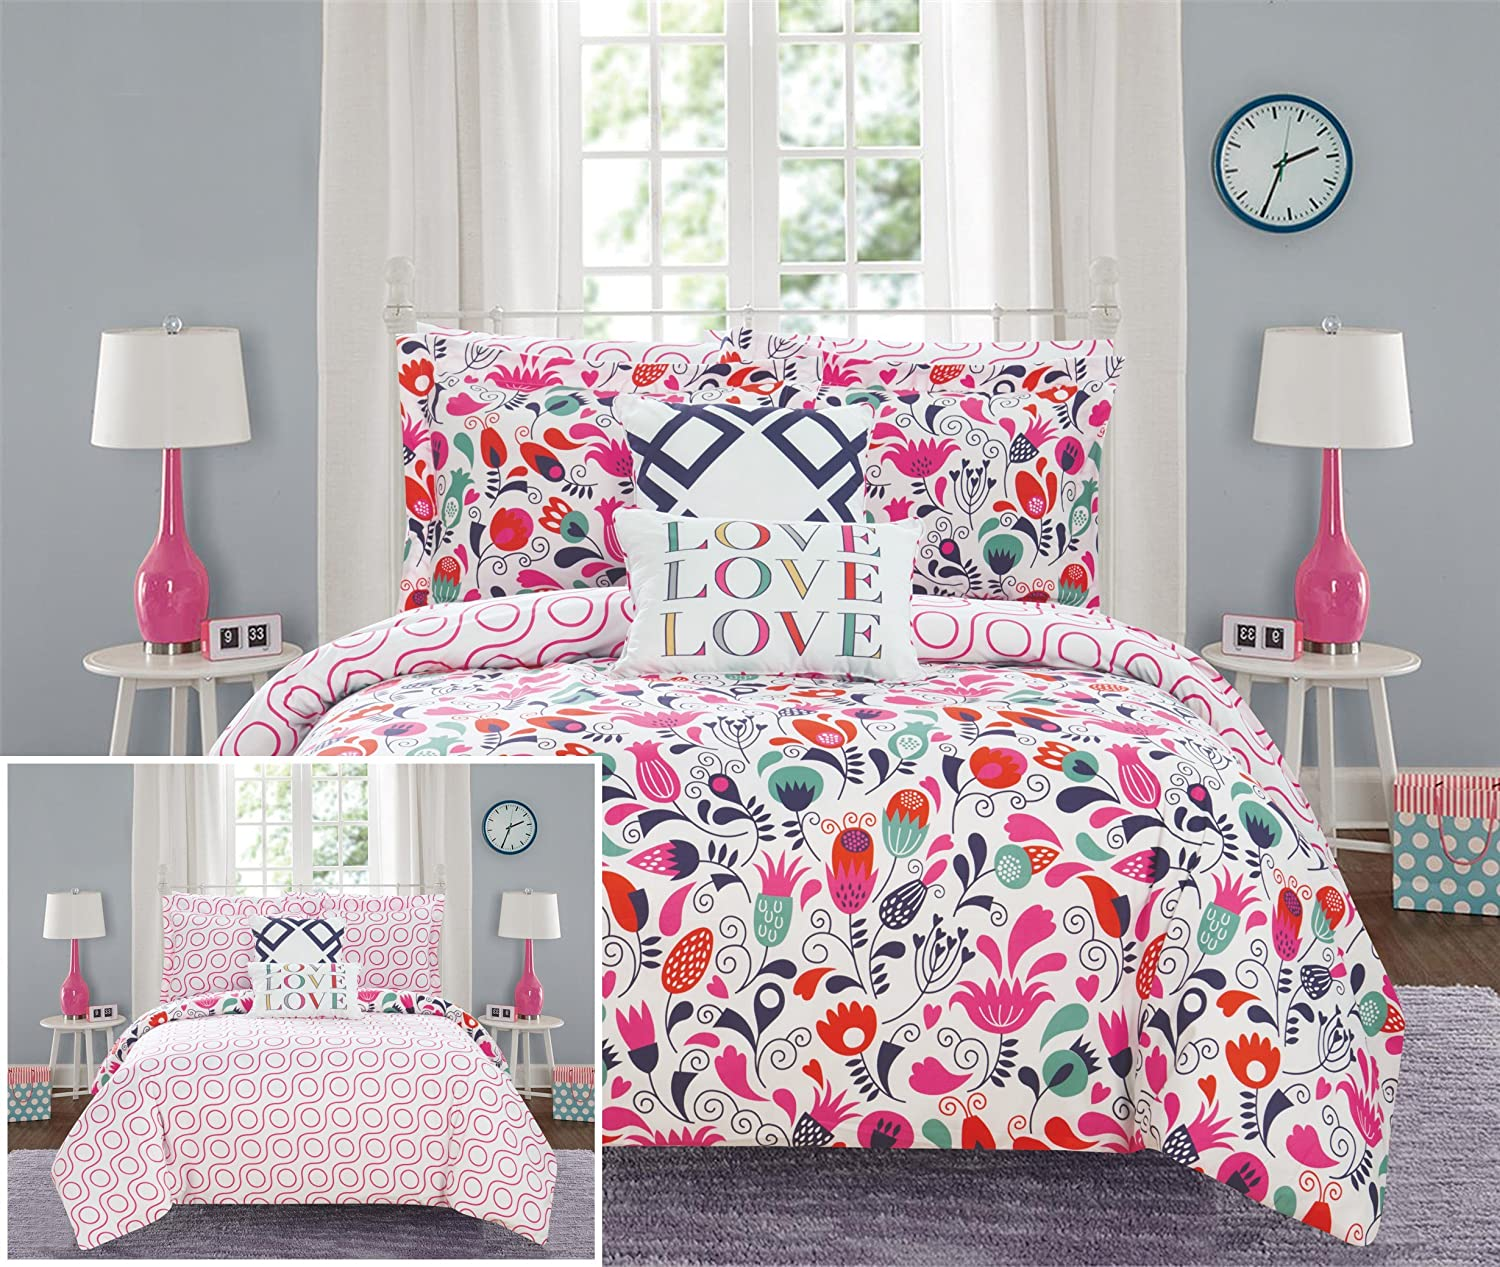 Chic Home Tulip 7 Piece Reversible Comforter Colorful Floral Print Design Bed in a Bag-Sheet Set Decorative Pillows Sham Included/XL Size, Twin, Pink